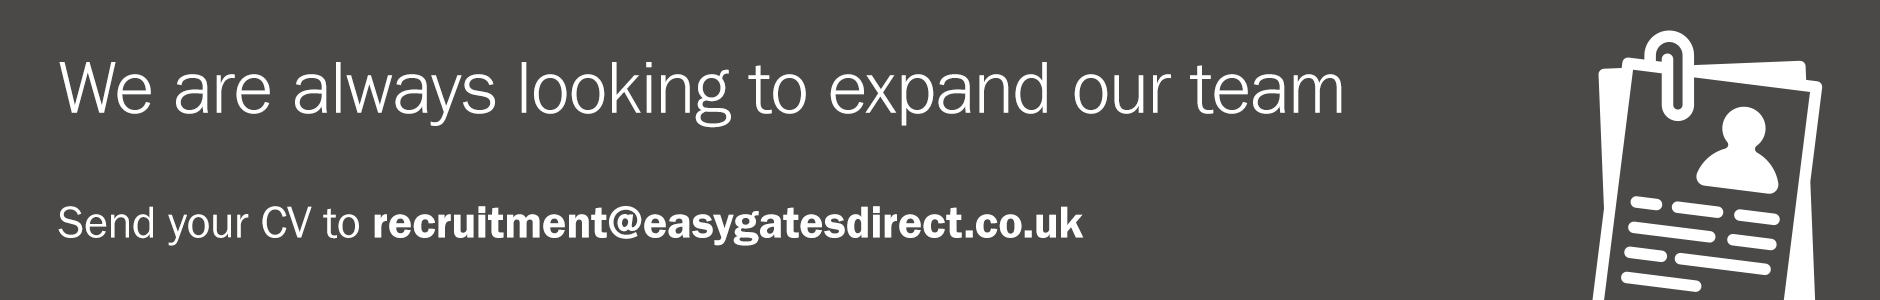 We are always looking to expand our team. Send your CV to recruitment@easygatesdirect.co.uk